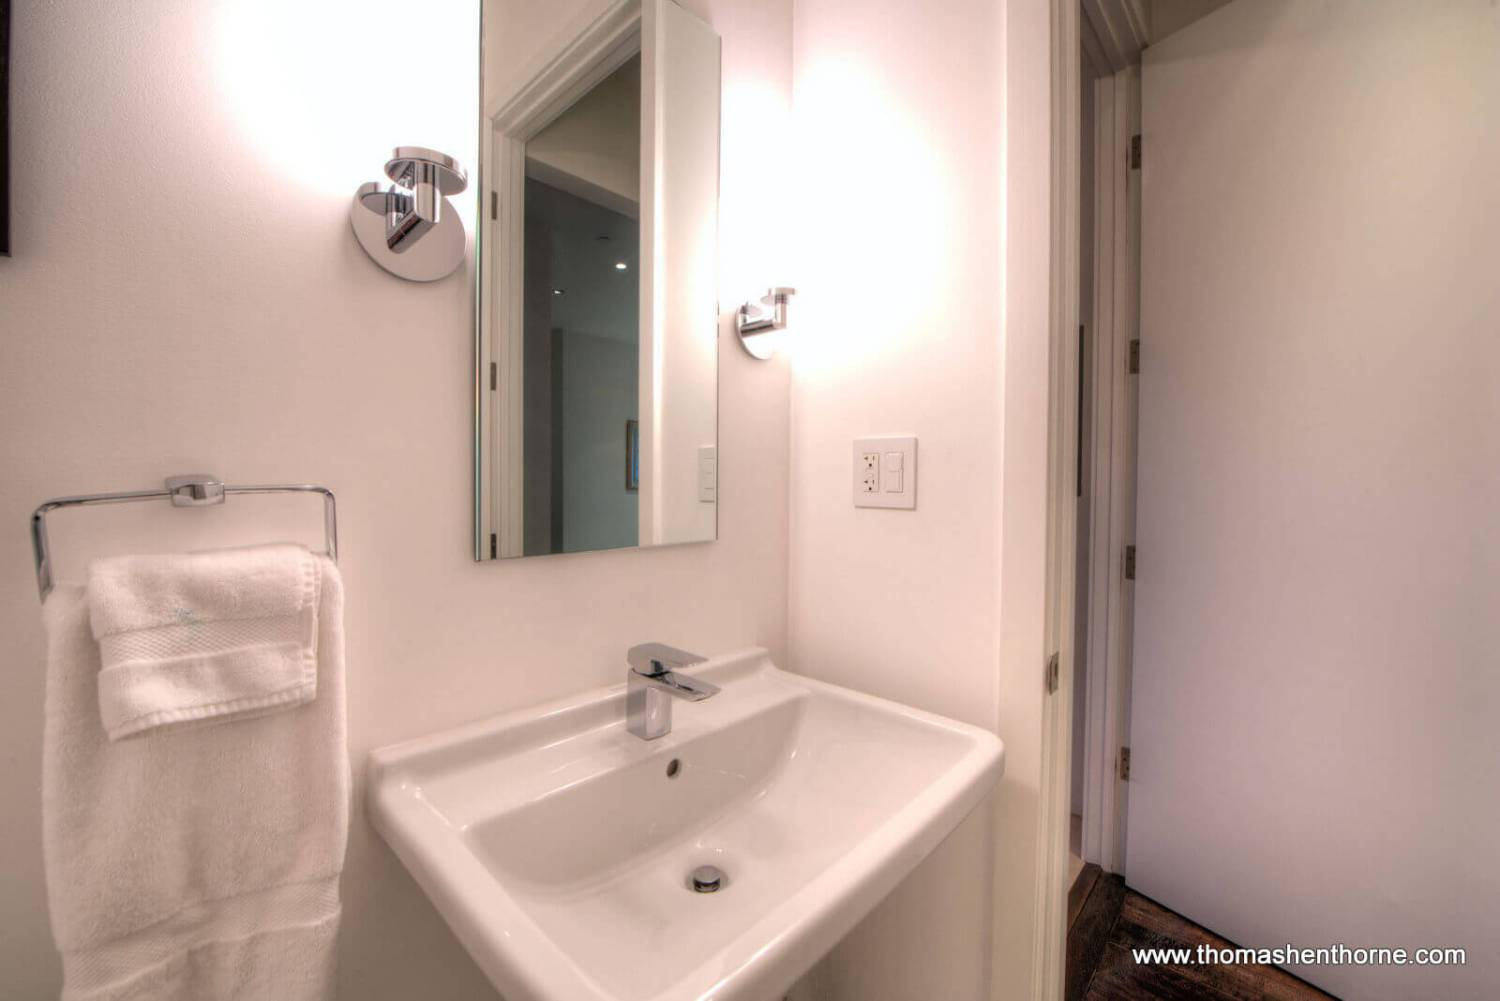 sink and towels with mirror